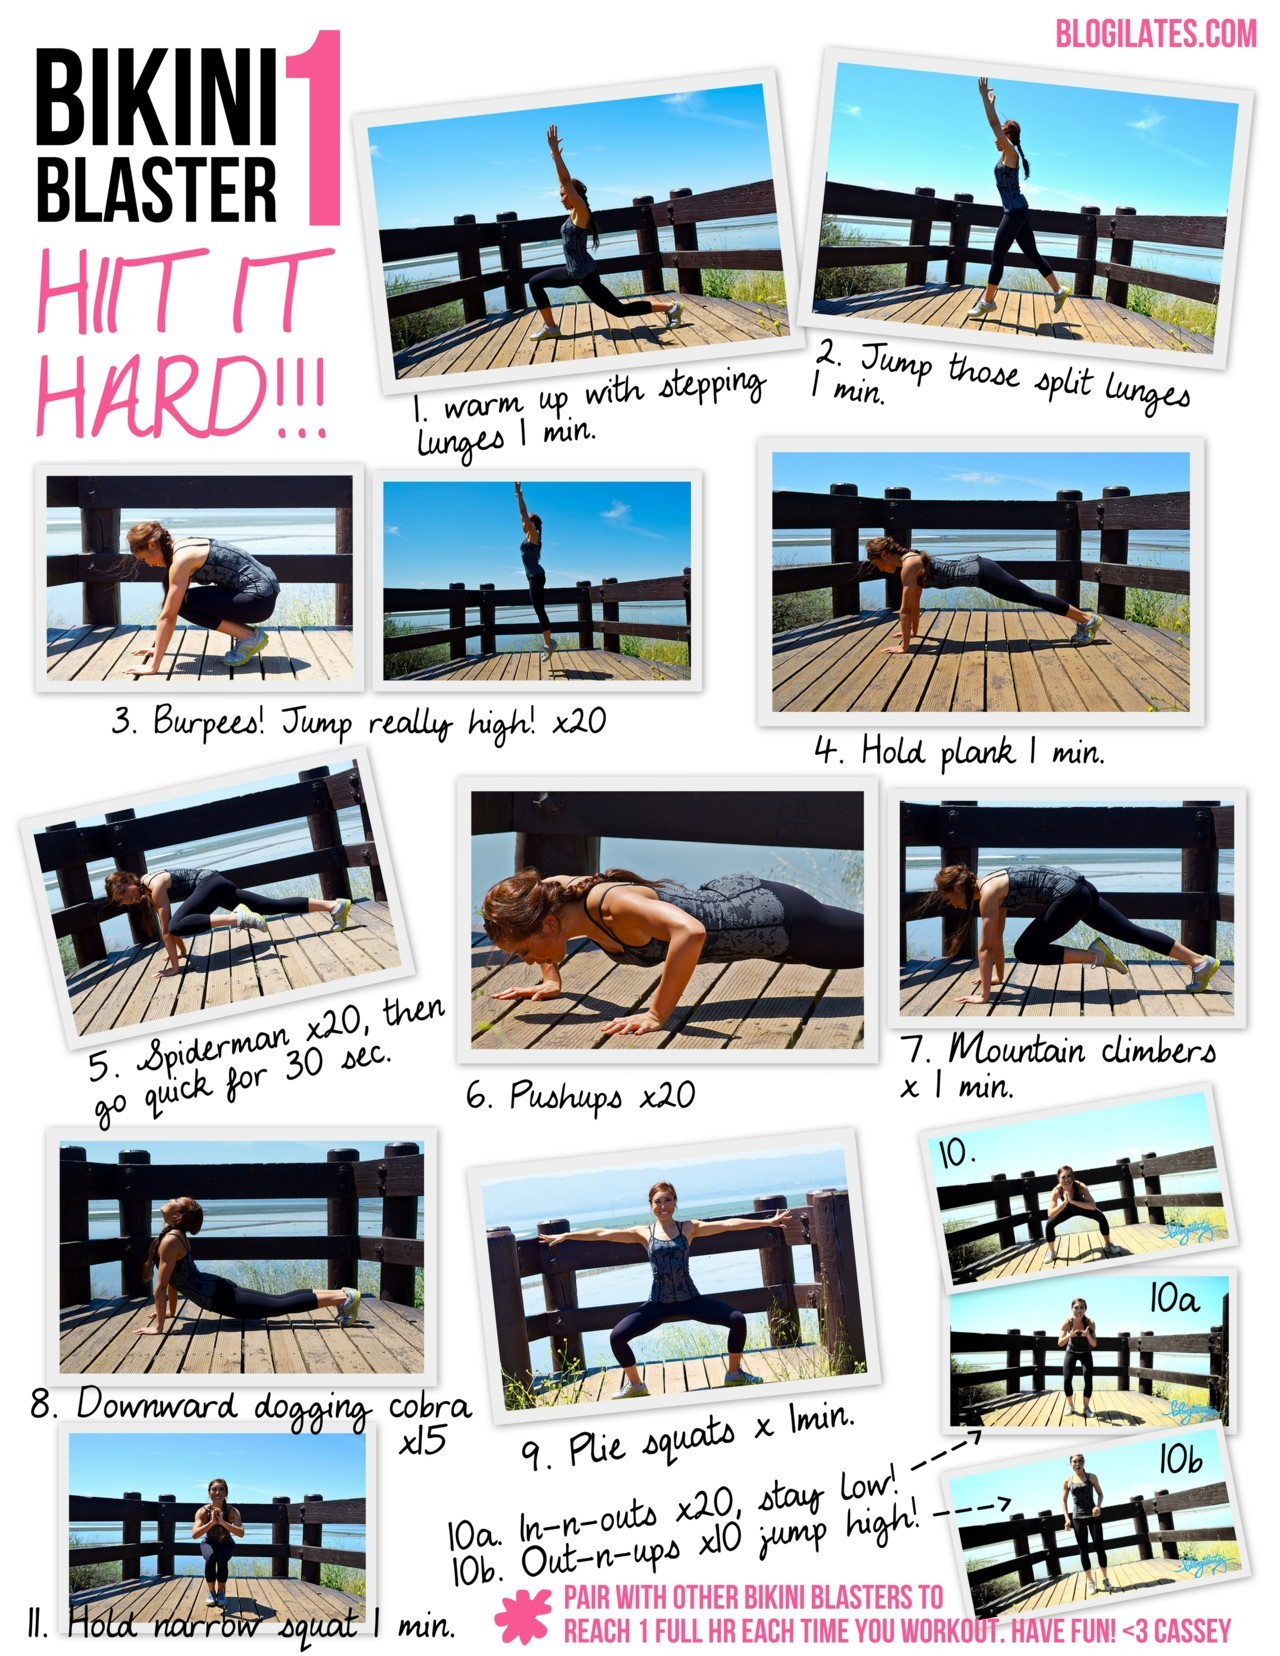 Take me with you to the gym! Bikini Blaster 1: HIIT IT HARD Printable. See video demo here.